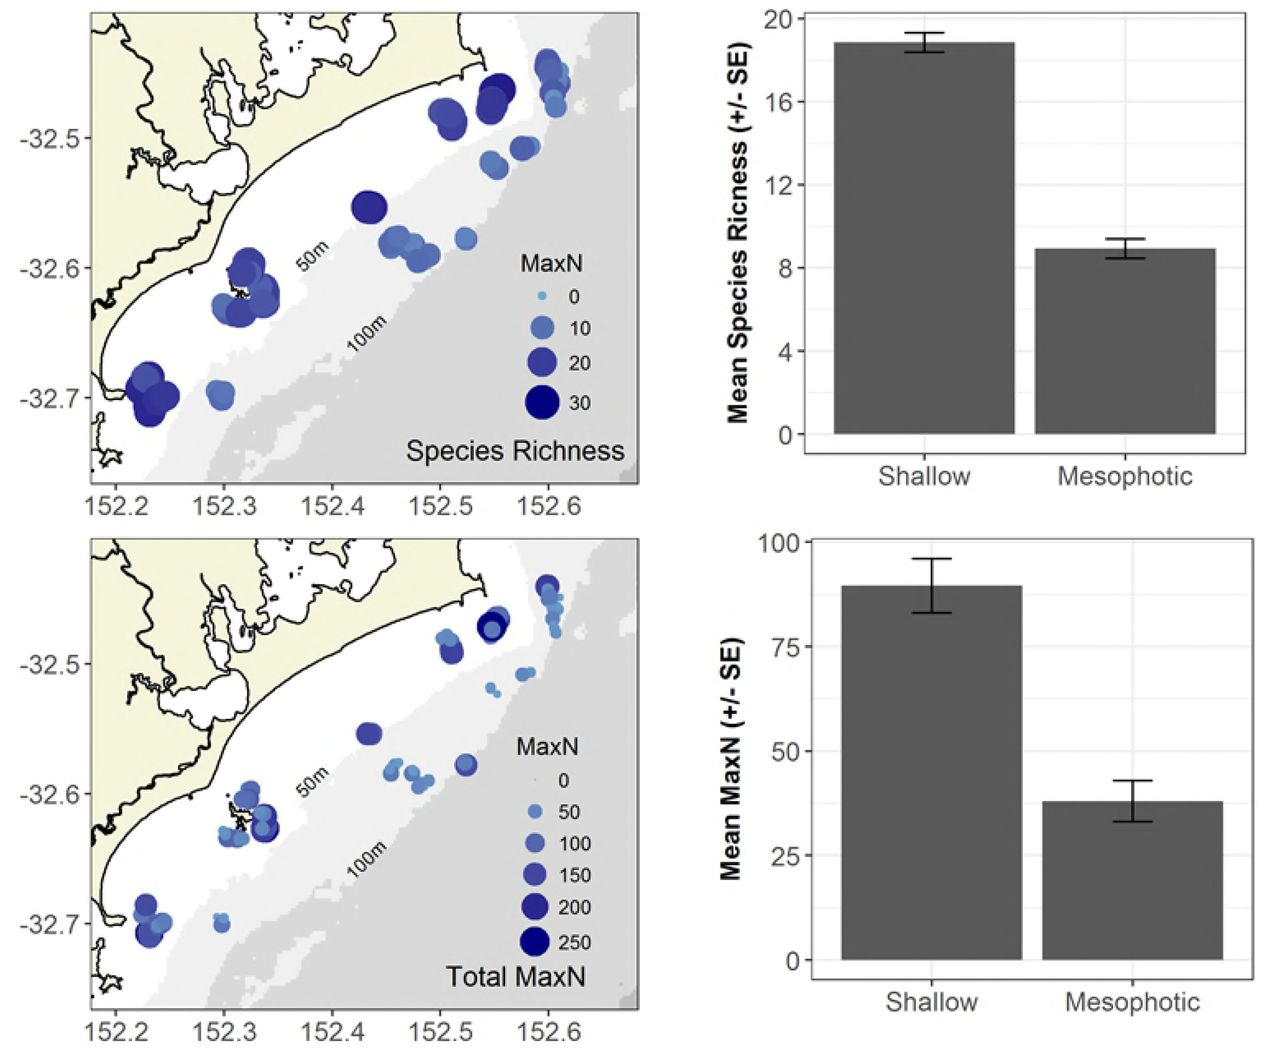 Taking a deeper look: Quantifying the differences in fish